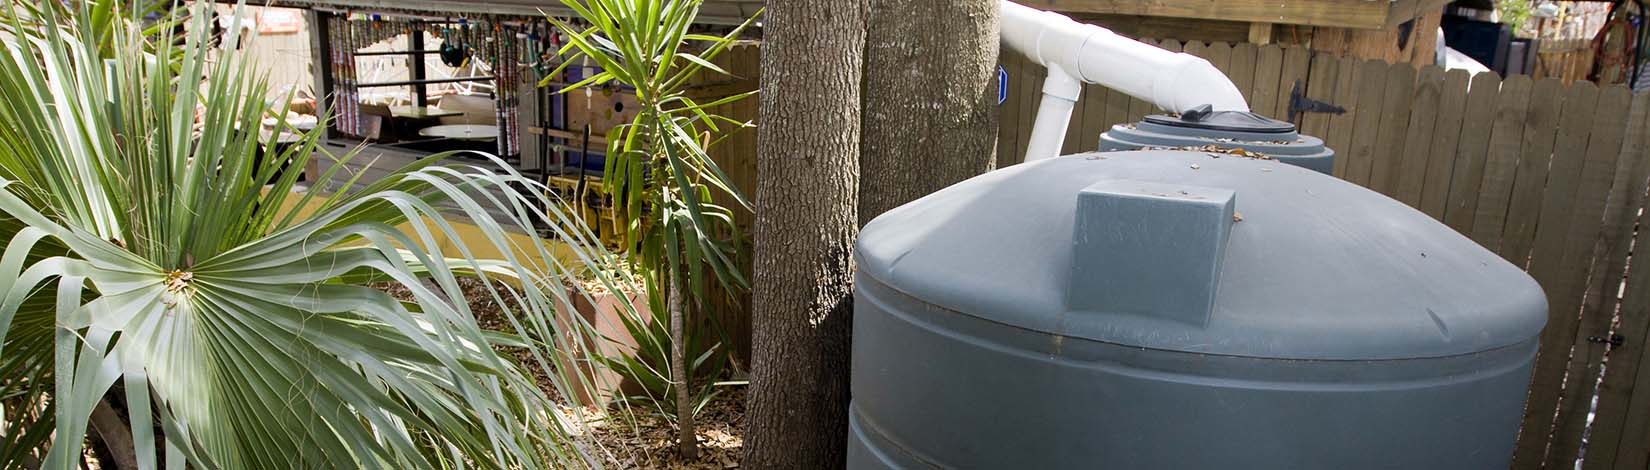 Saving and Using Rainwater - UF/IFAS Extension